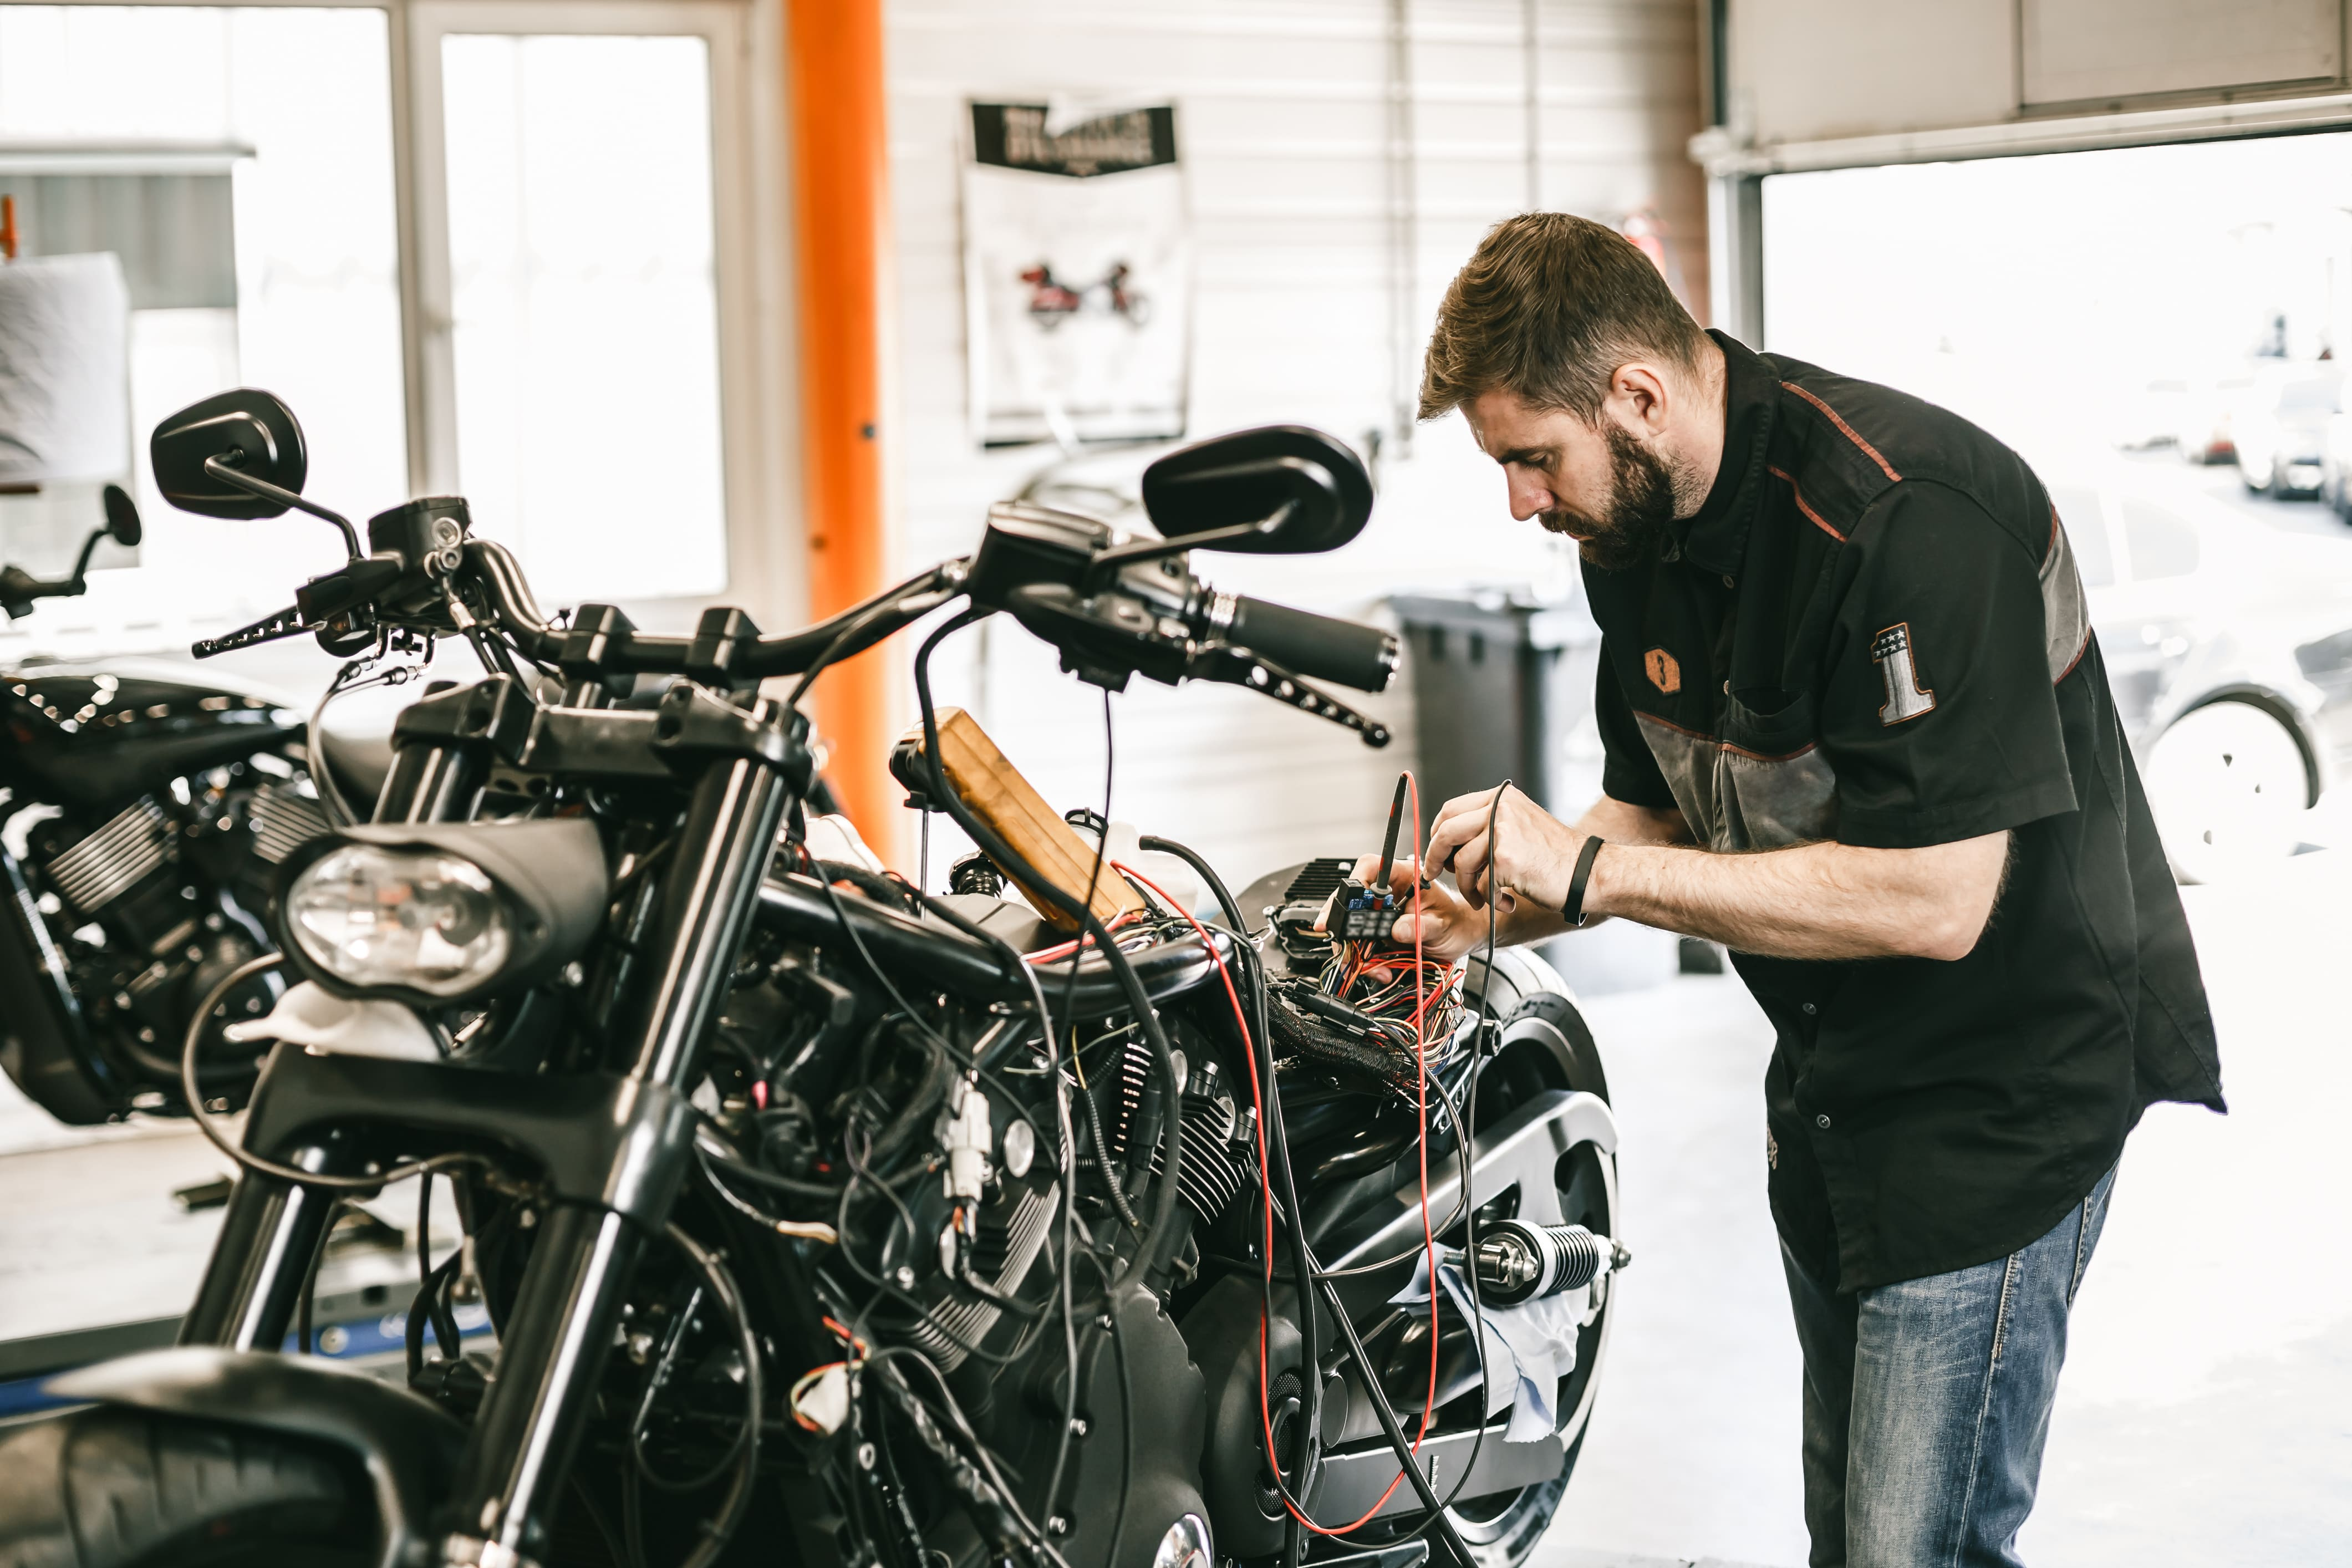 where to buy a motorcycle battery at a good price